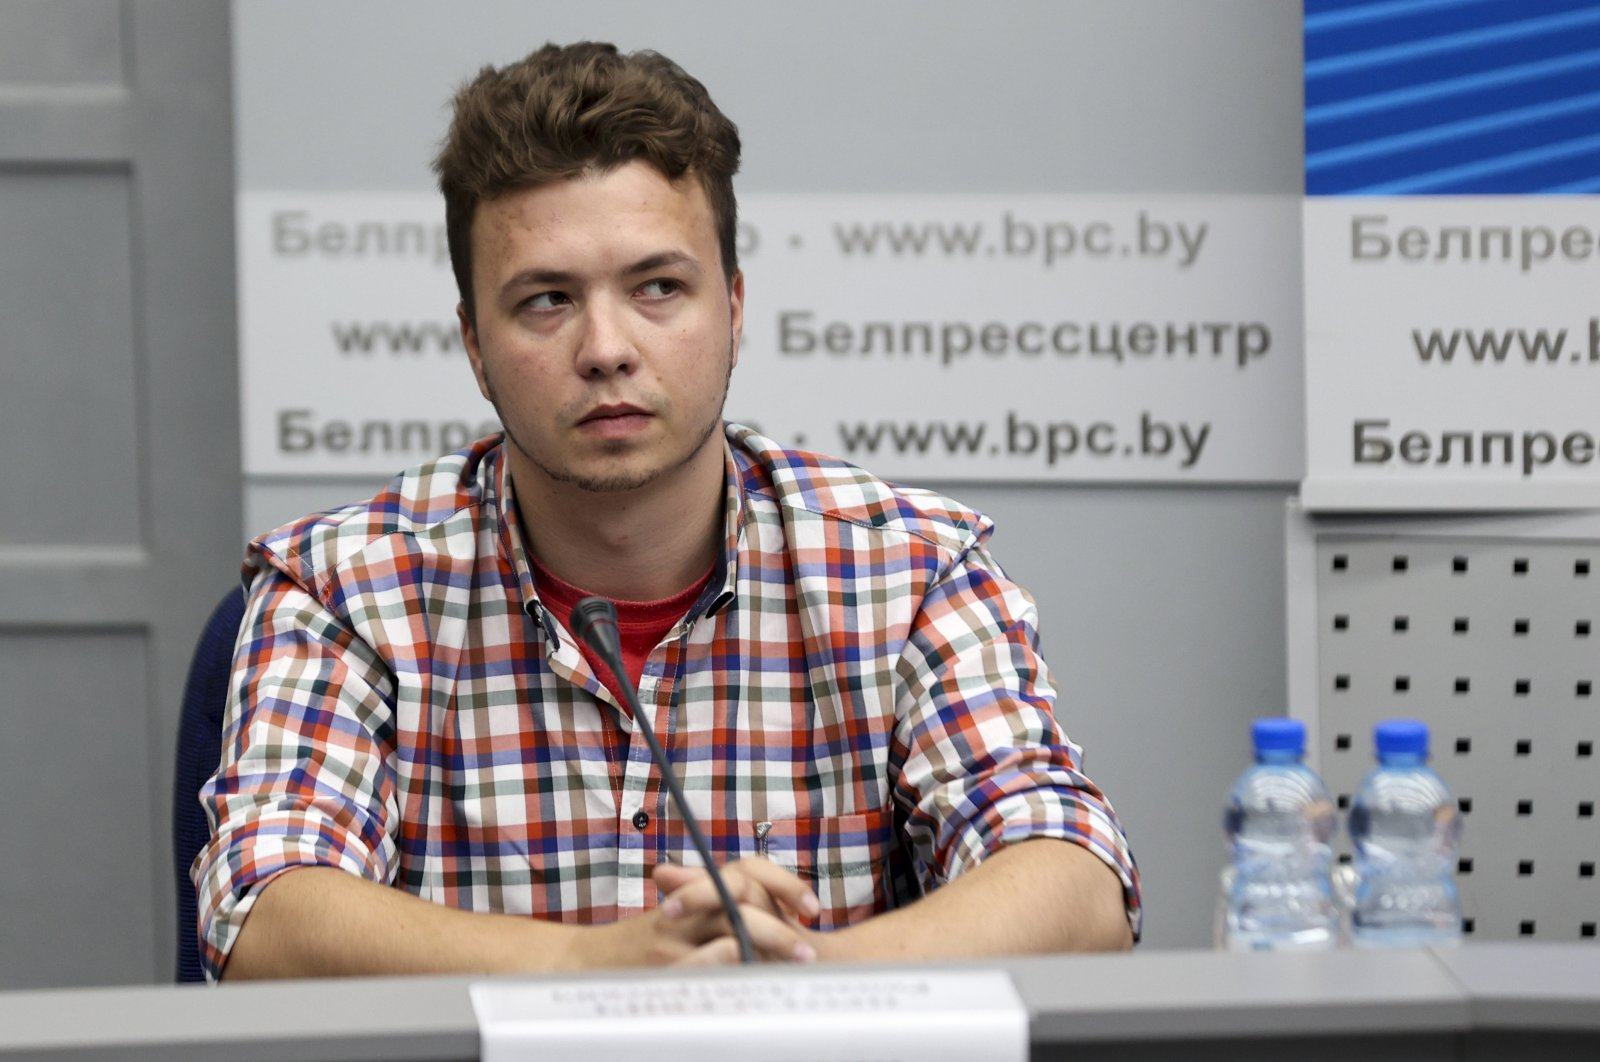 Belarusian dissident blogger Raman Pratasevich attends a news conference at the National Press Center of Ministry of Foreign Affairs in Minsk, Belarus, June 14, 2021. (AP Photo)